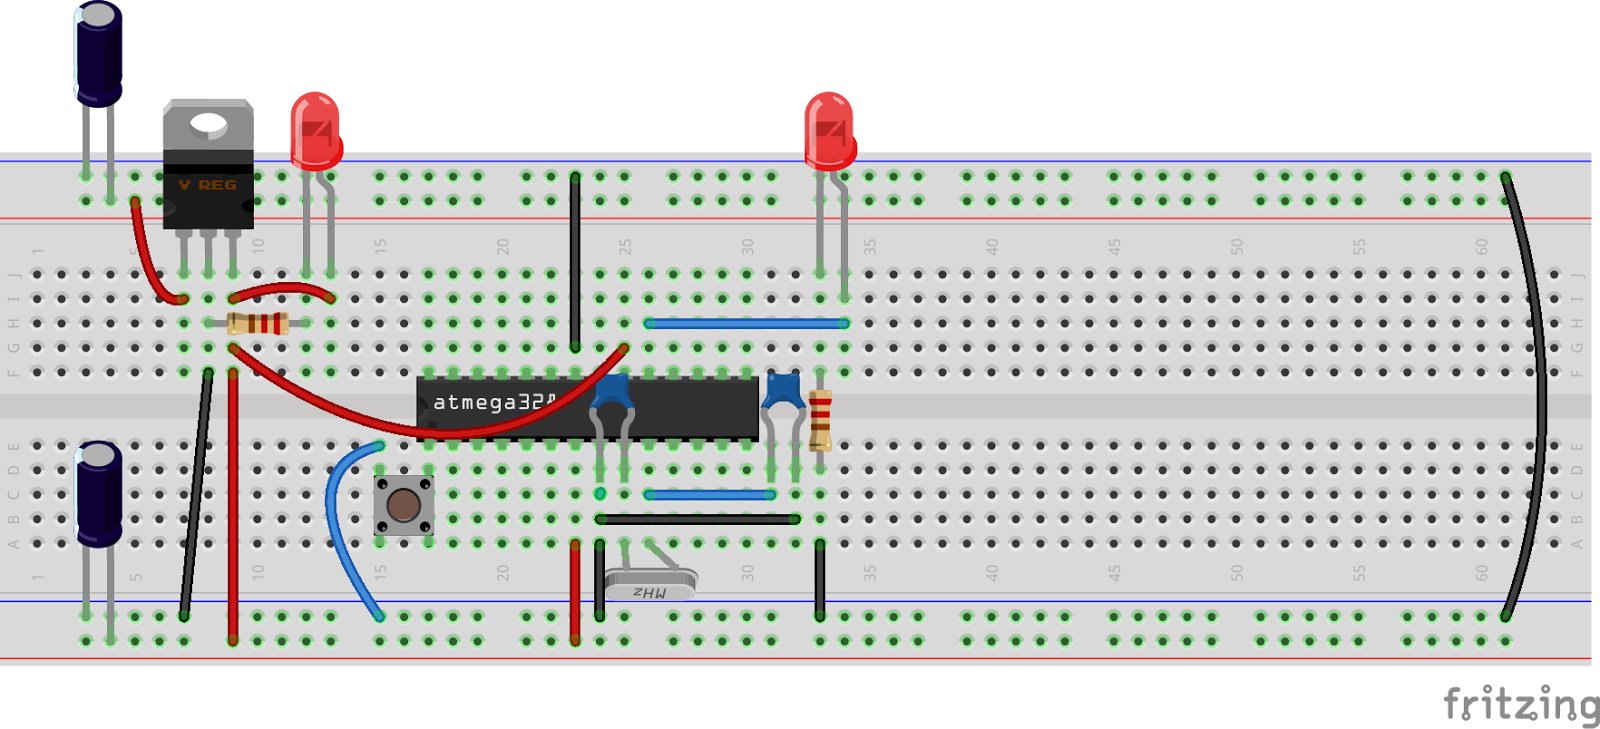 Placa De Pruebas Protoboard additionally 4 Bits 7 Segment Led Display With Arduino in addition Smoke Detector Circuit furthermore Utiliser Un Bouton Poussoir moreover Watch. on breadboard